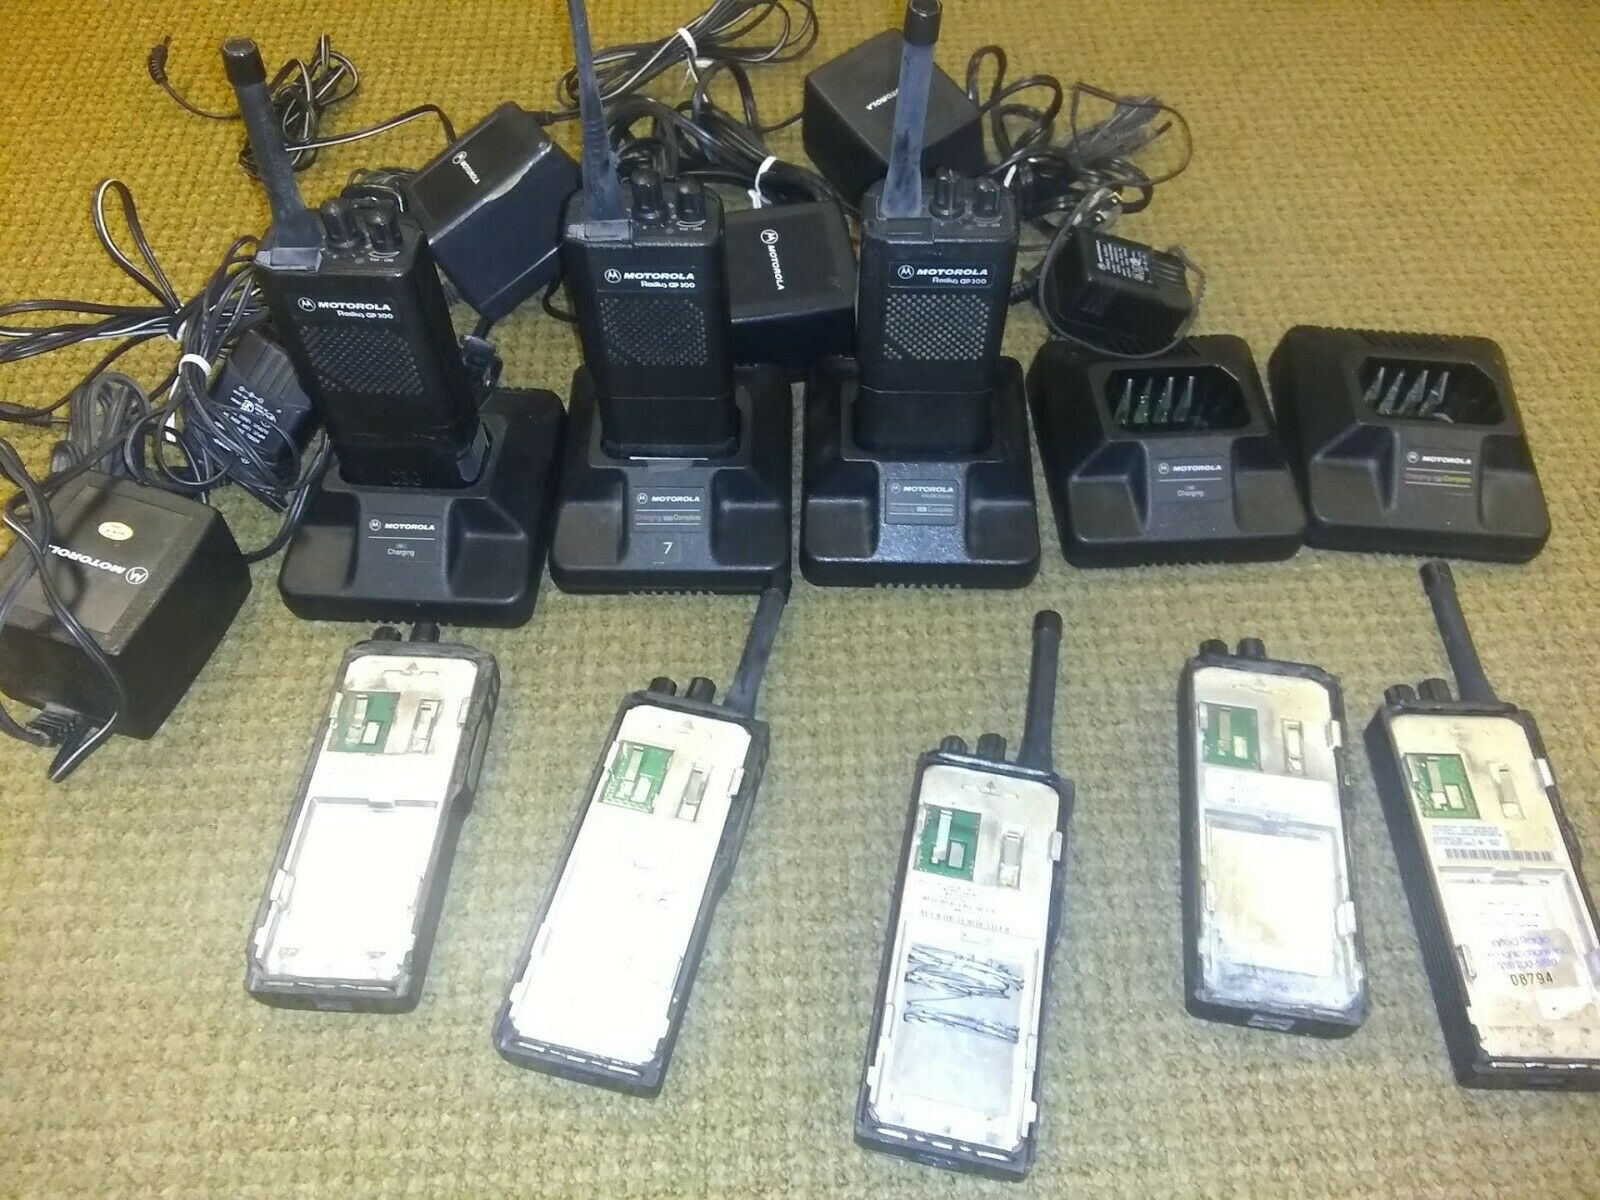 (8) Motorola Radius Gp300 and 5 Chargers( Untested). Buy it now for 65.10